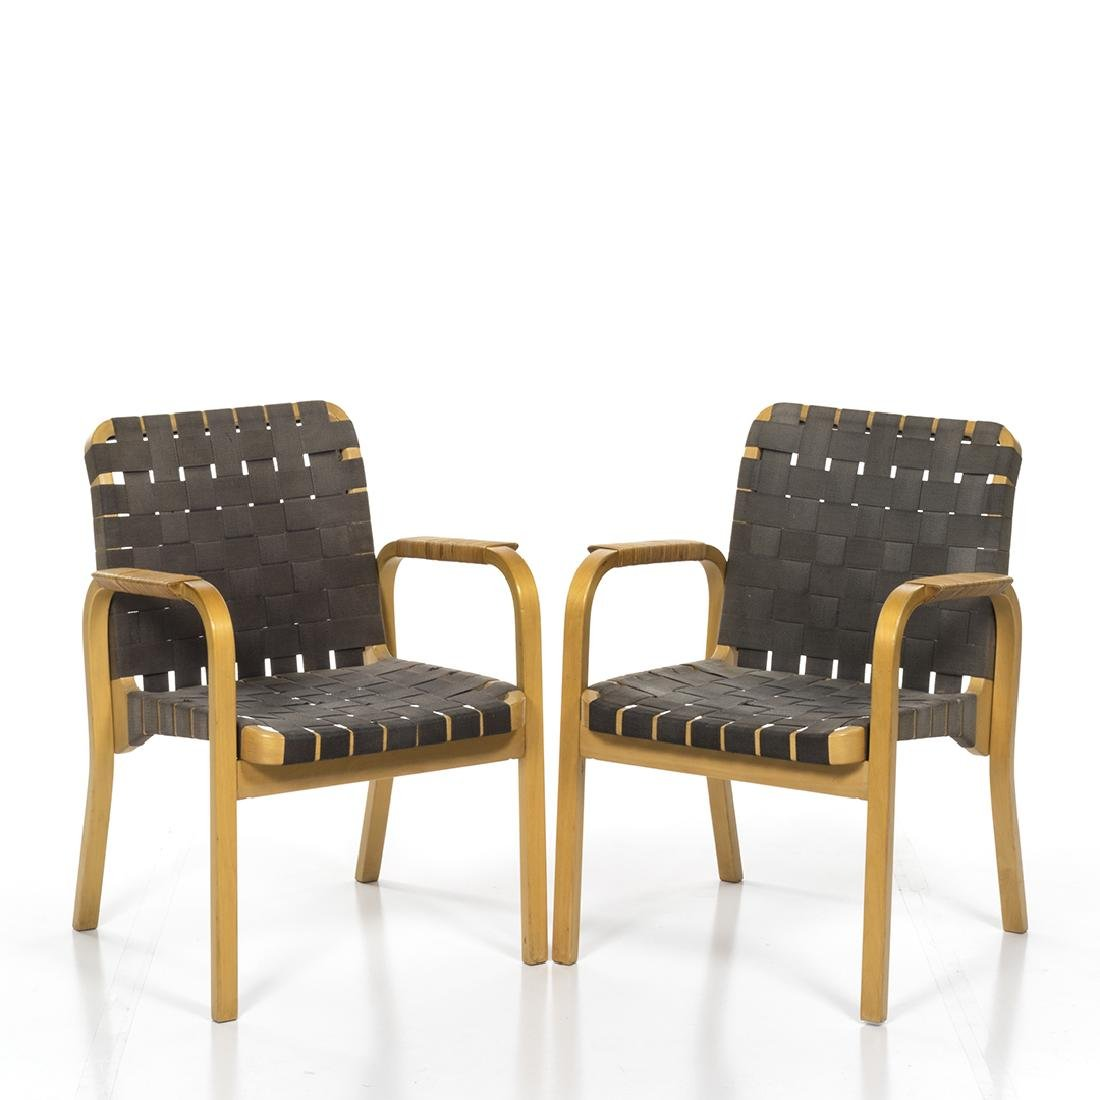 Alvar Aalto Model 611 Chairs (6) - 3